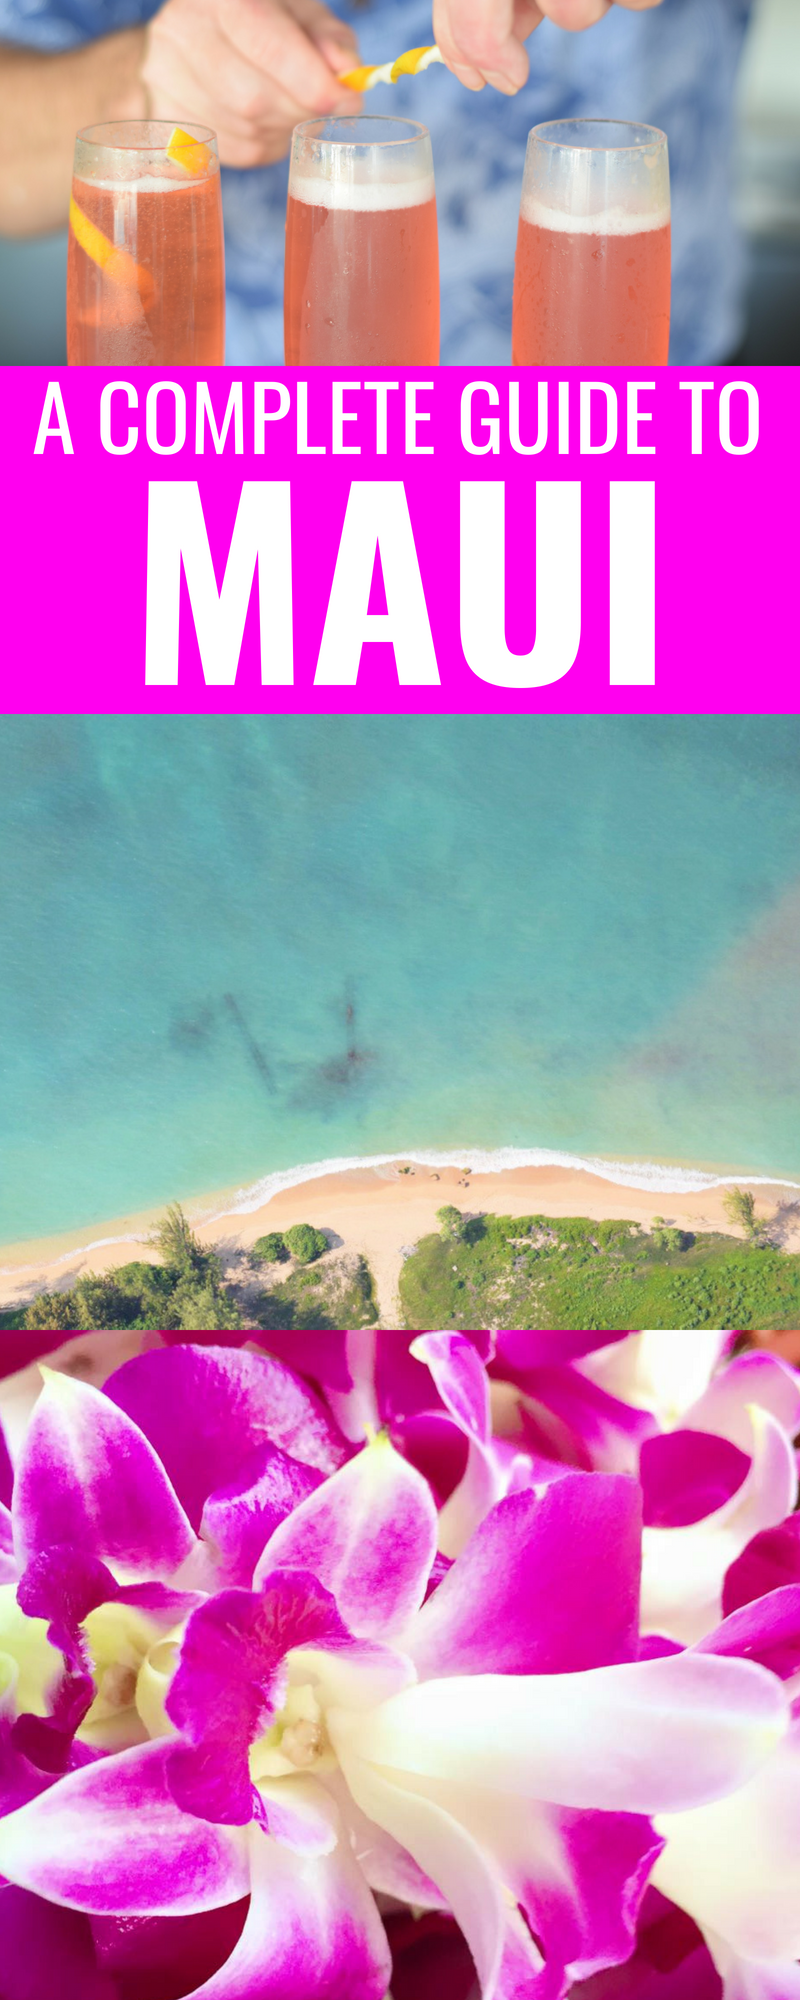 The Ultimate Activity List For Maui - Maui Travel Guide - Best Things To Do On Maui - Maui hawaii - Hawaii Travel Guide - Hawaiian Islands - Things To Do In Maui - Maui Beaches - Hawaii Vacation - Communikait by Kait Hanson #maui #hawaii #travel